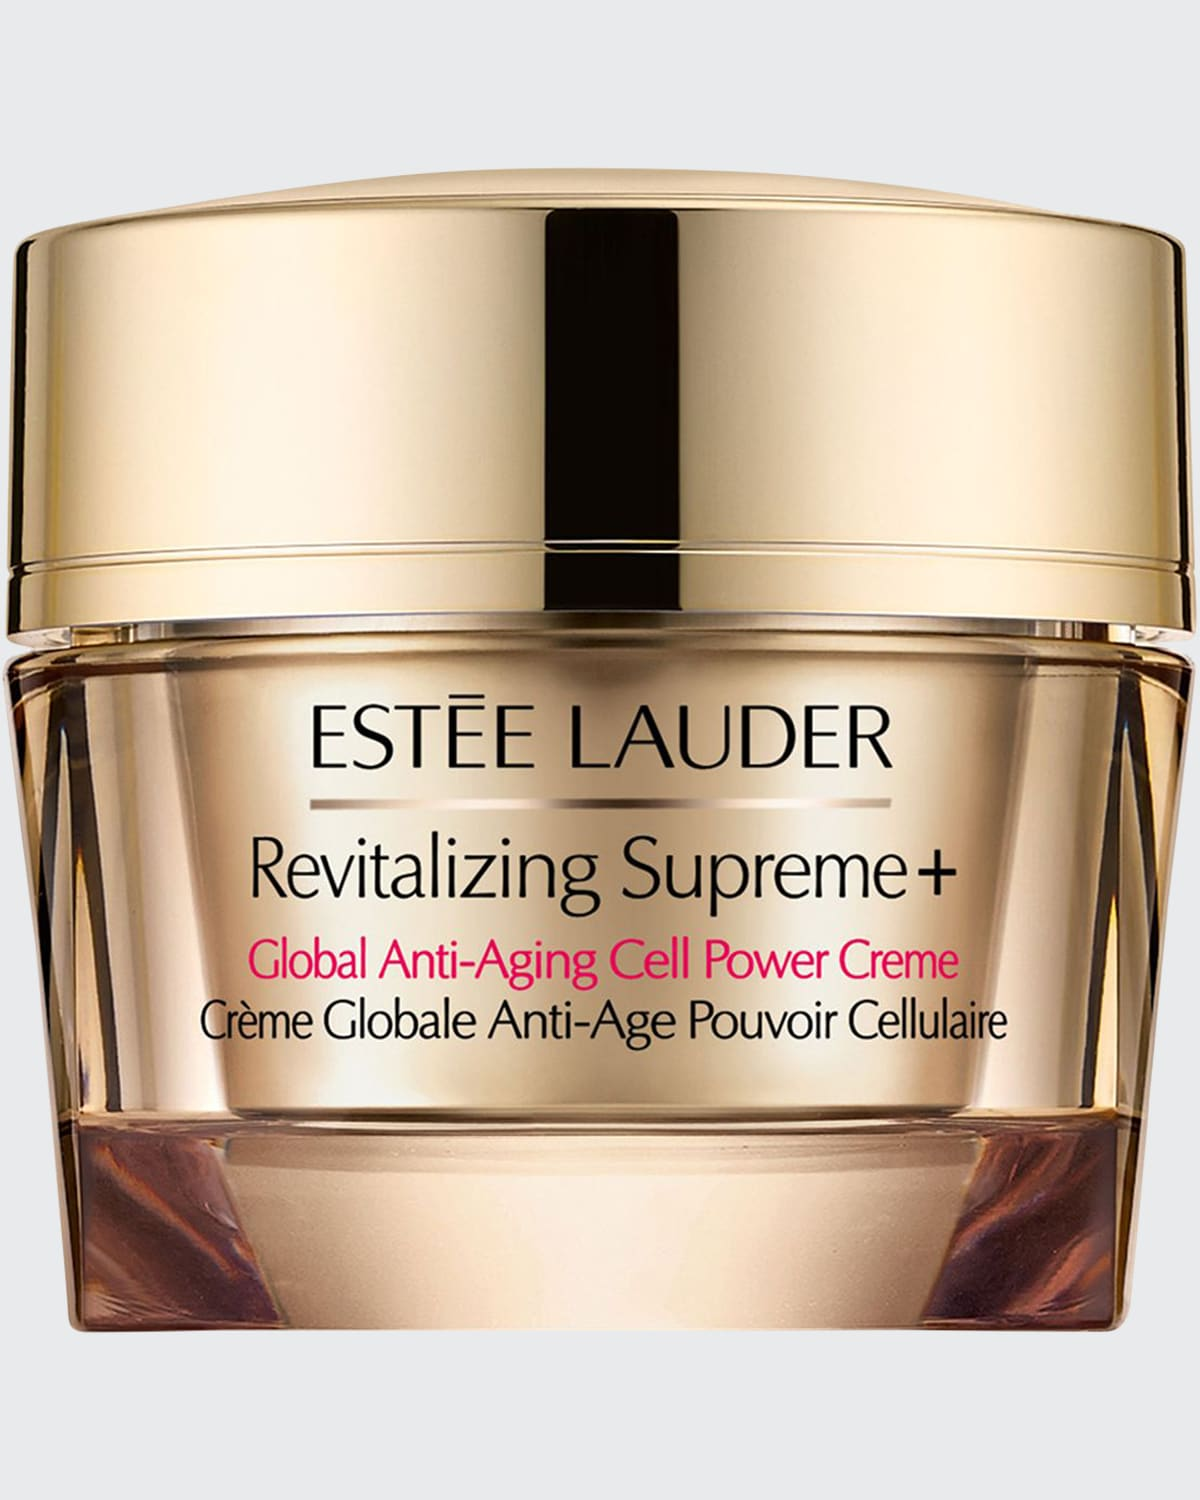 Revitalizing Supreme+ Global Anti-Aging Cell Power Cr & #232me